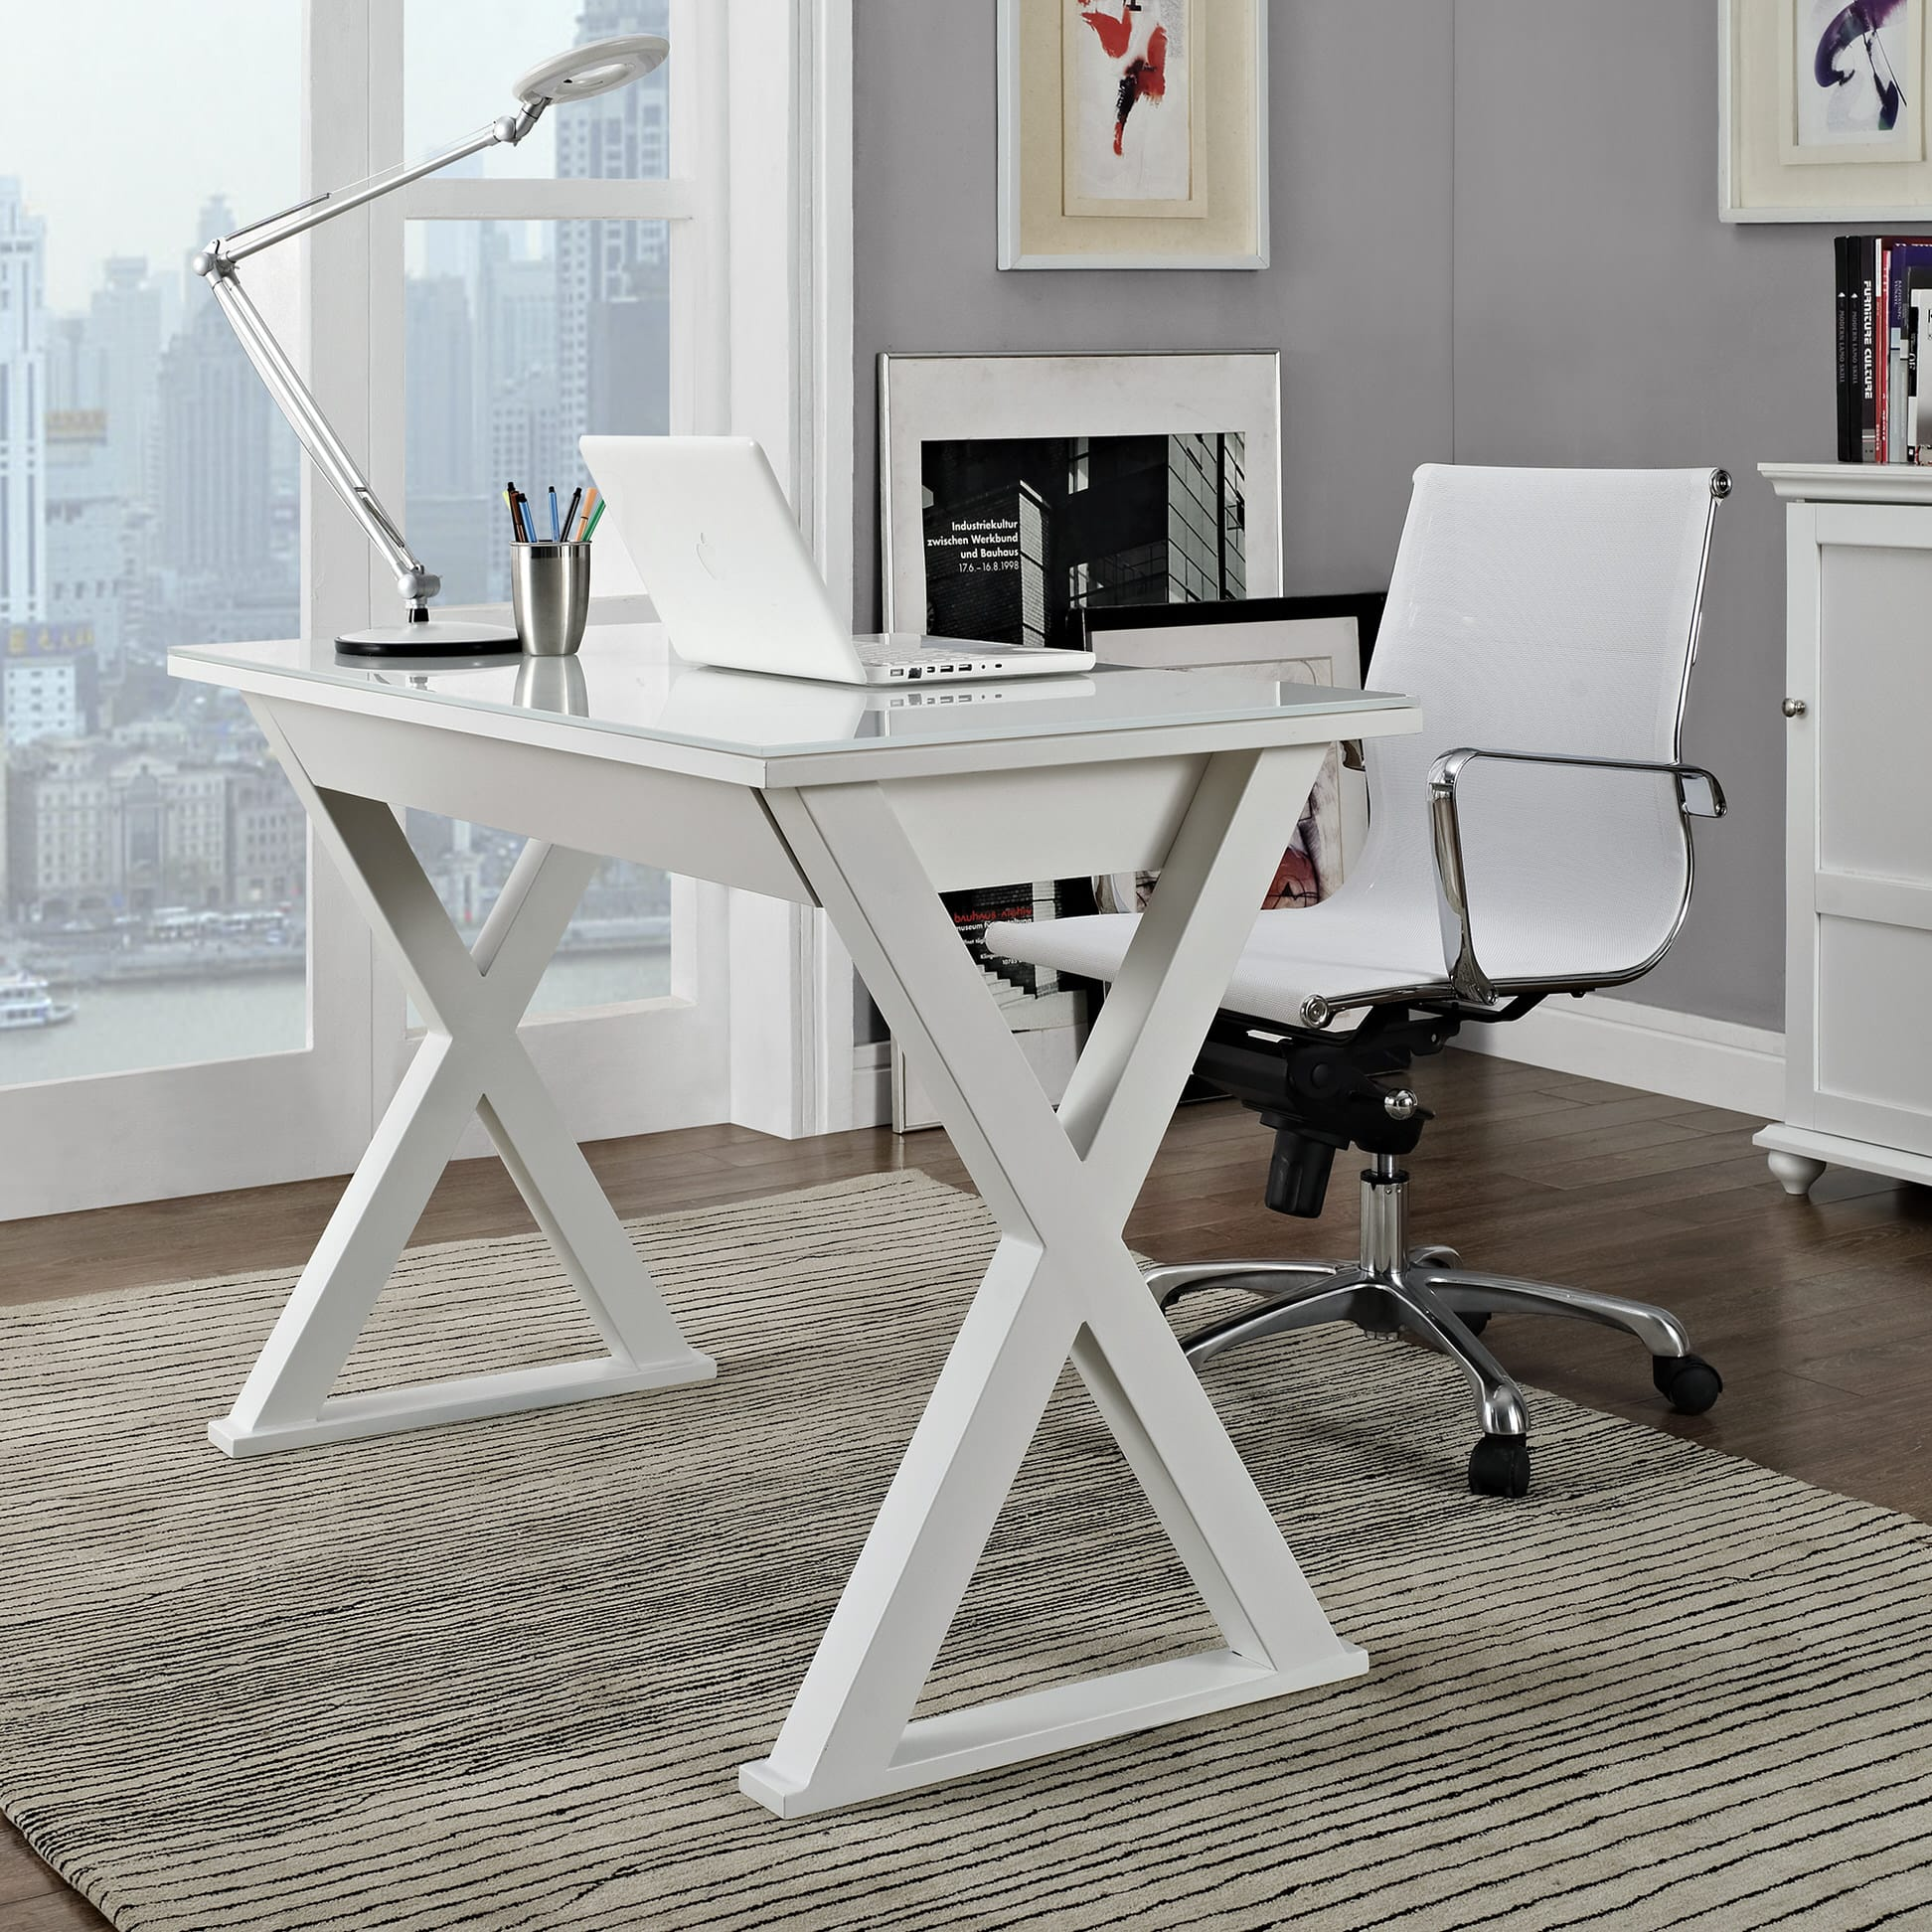 Awe Inspiring Xtra 48 Inch Computer Desk White By Walker Edison Beutiful Home Inspiration Semekurdistantinfo